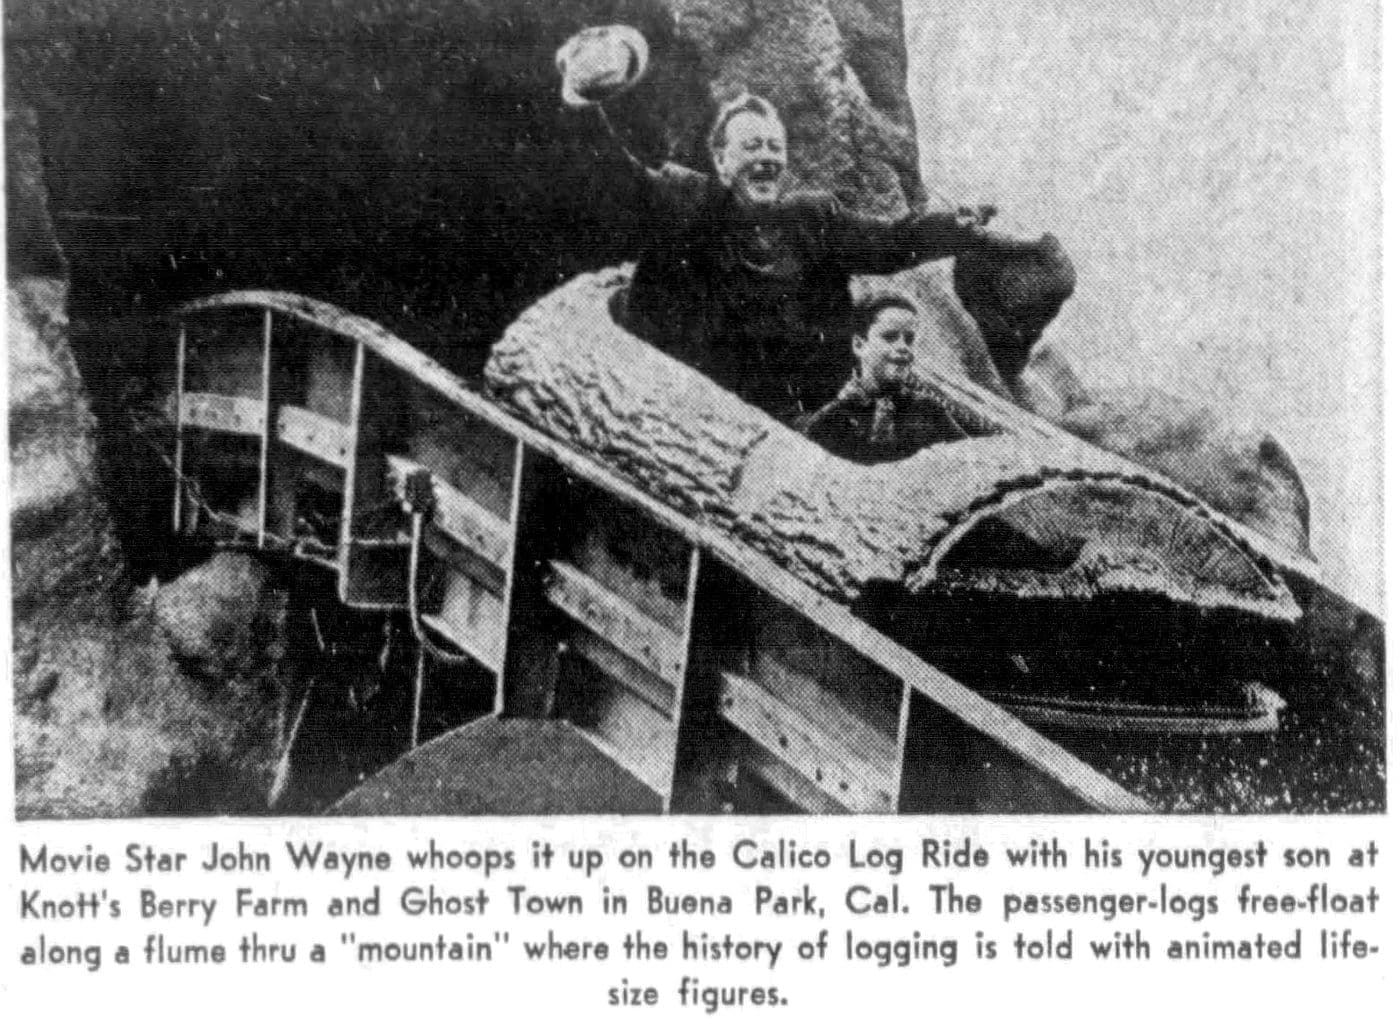 John Wayne on a log flume ride at Knott's Berry Farm in 1970